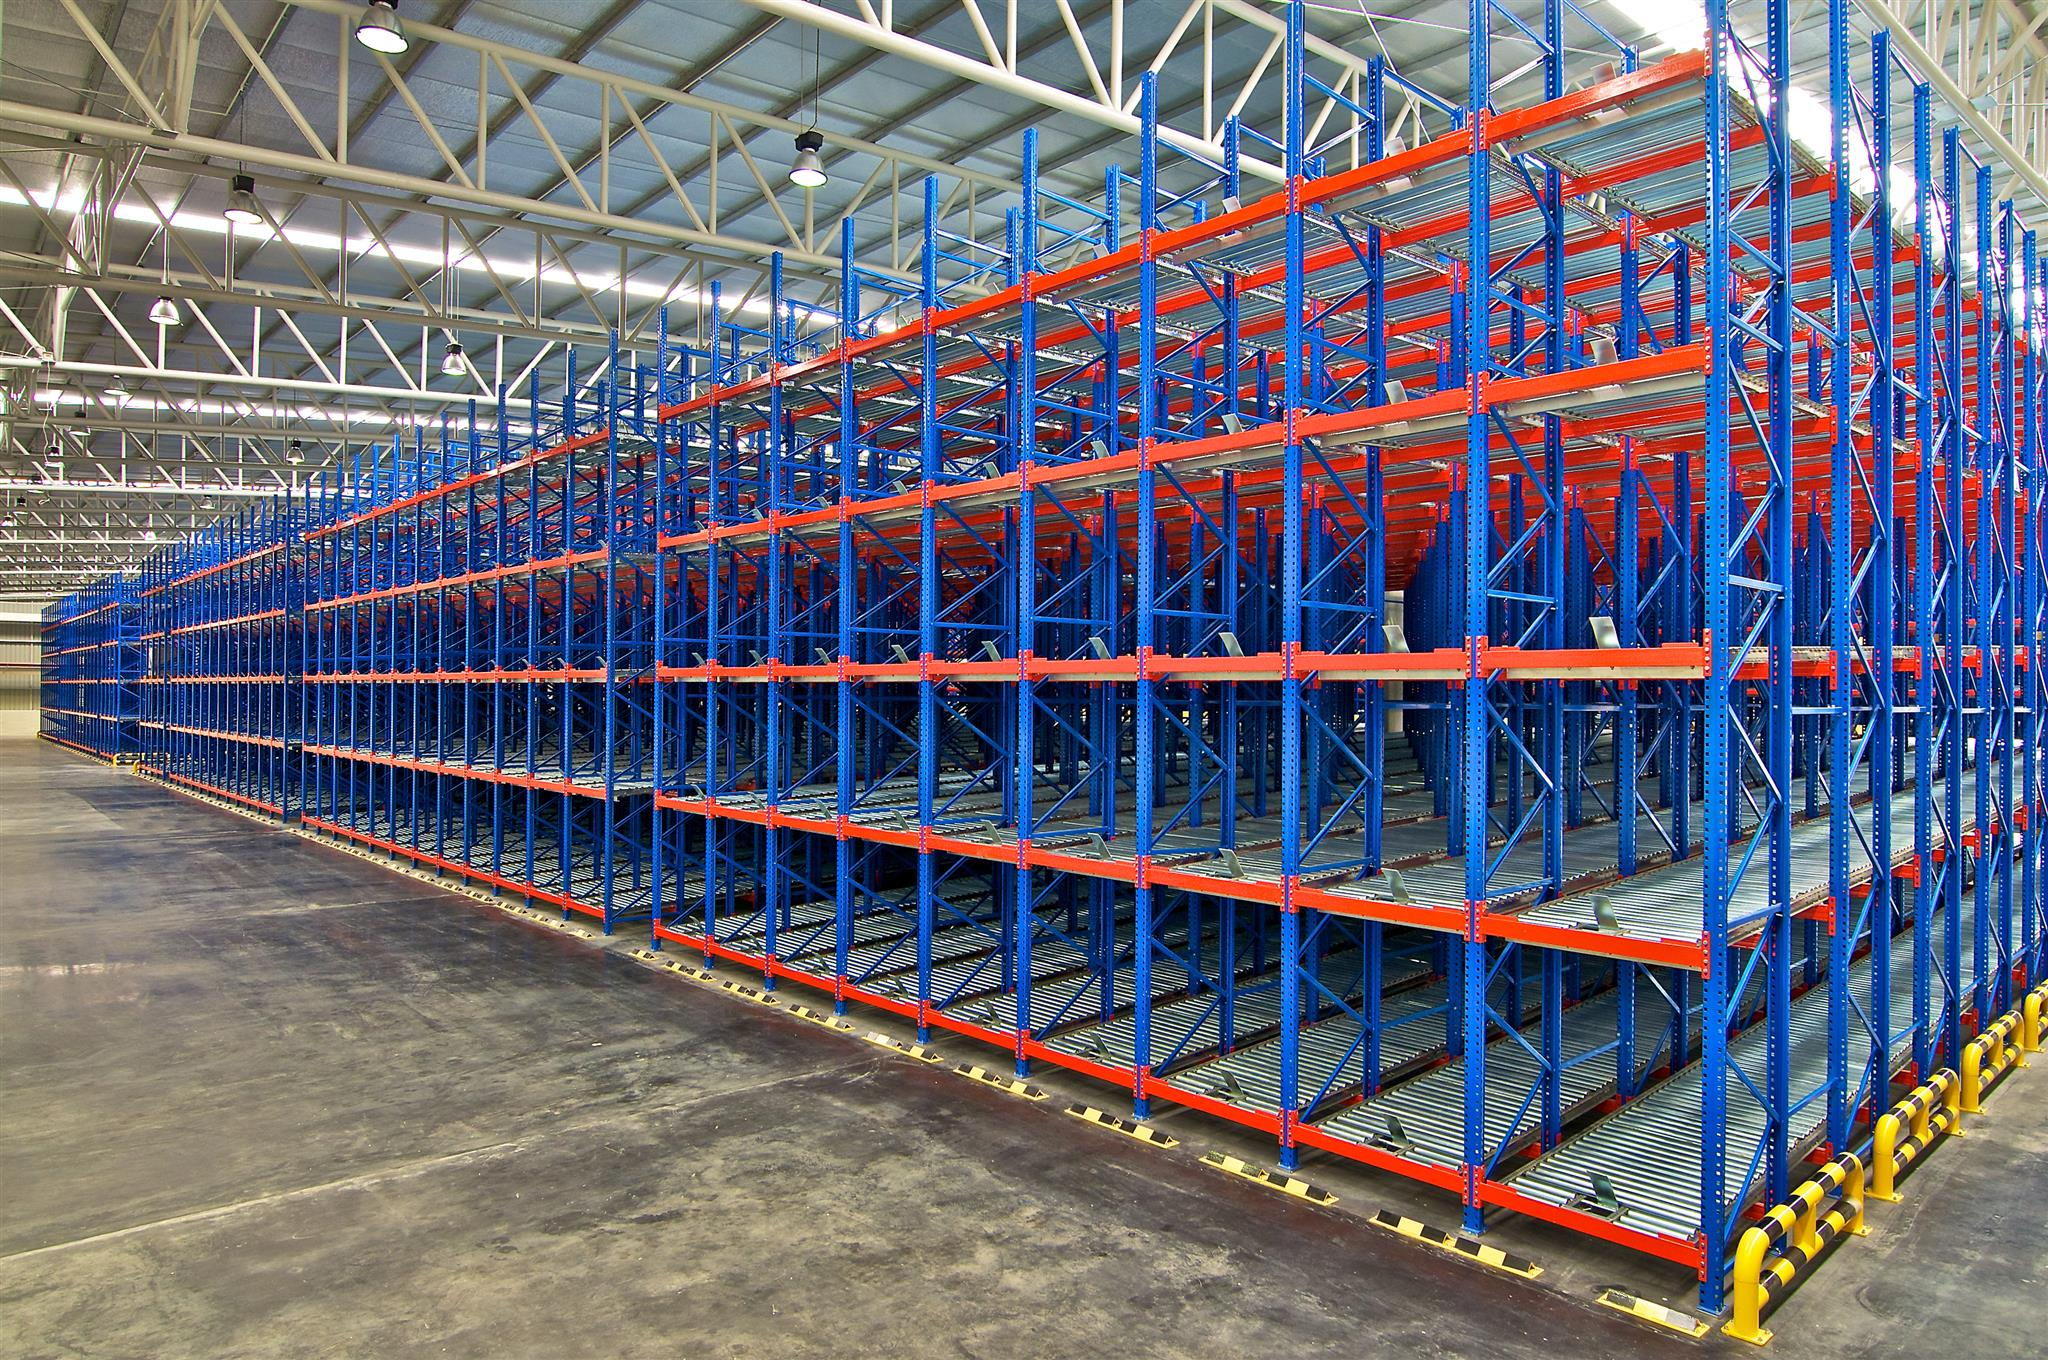 Advantages of Industrial Metal Shelving - Everything Warehouse